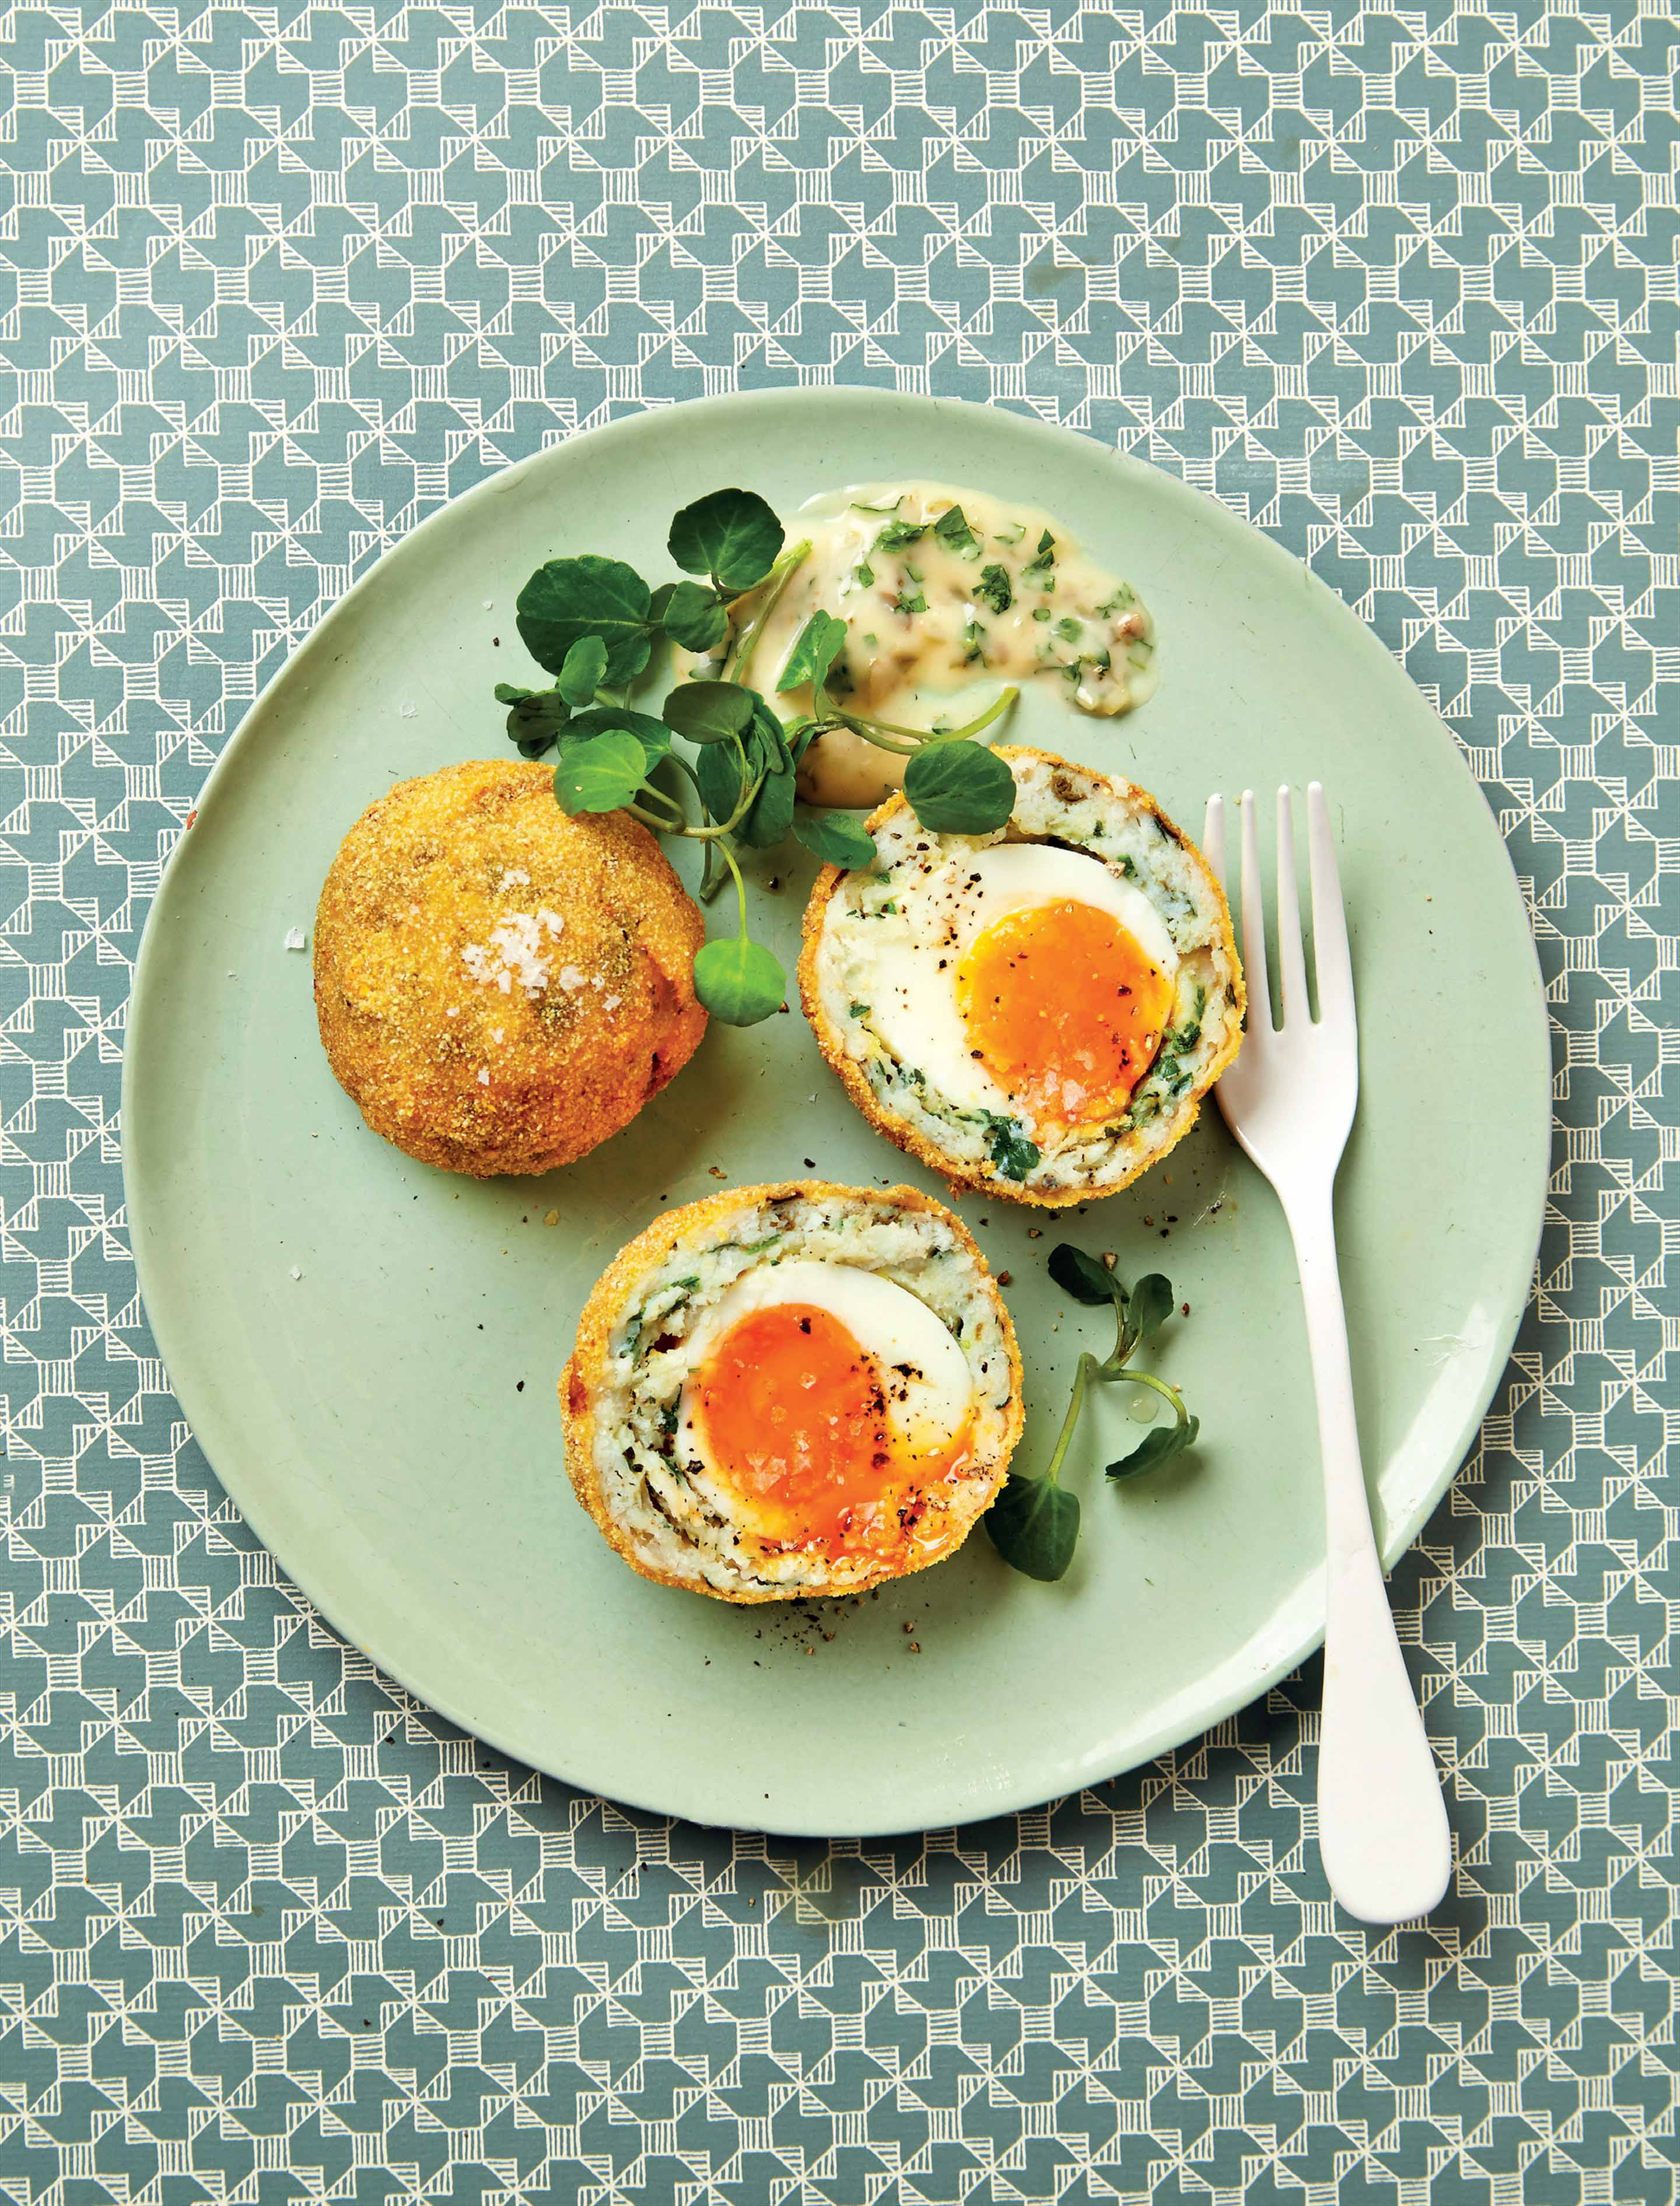 Smoked haddock scotch eggs